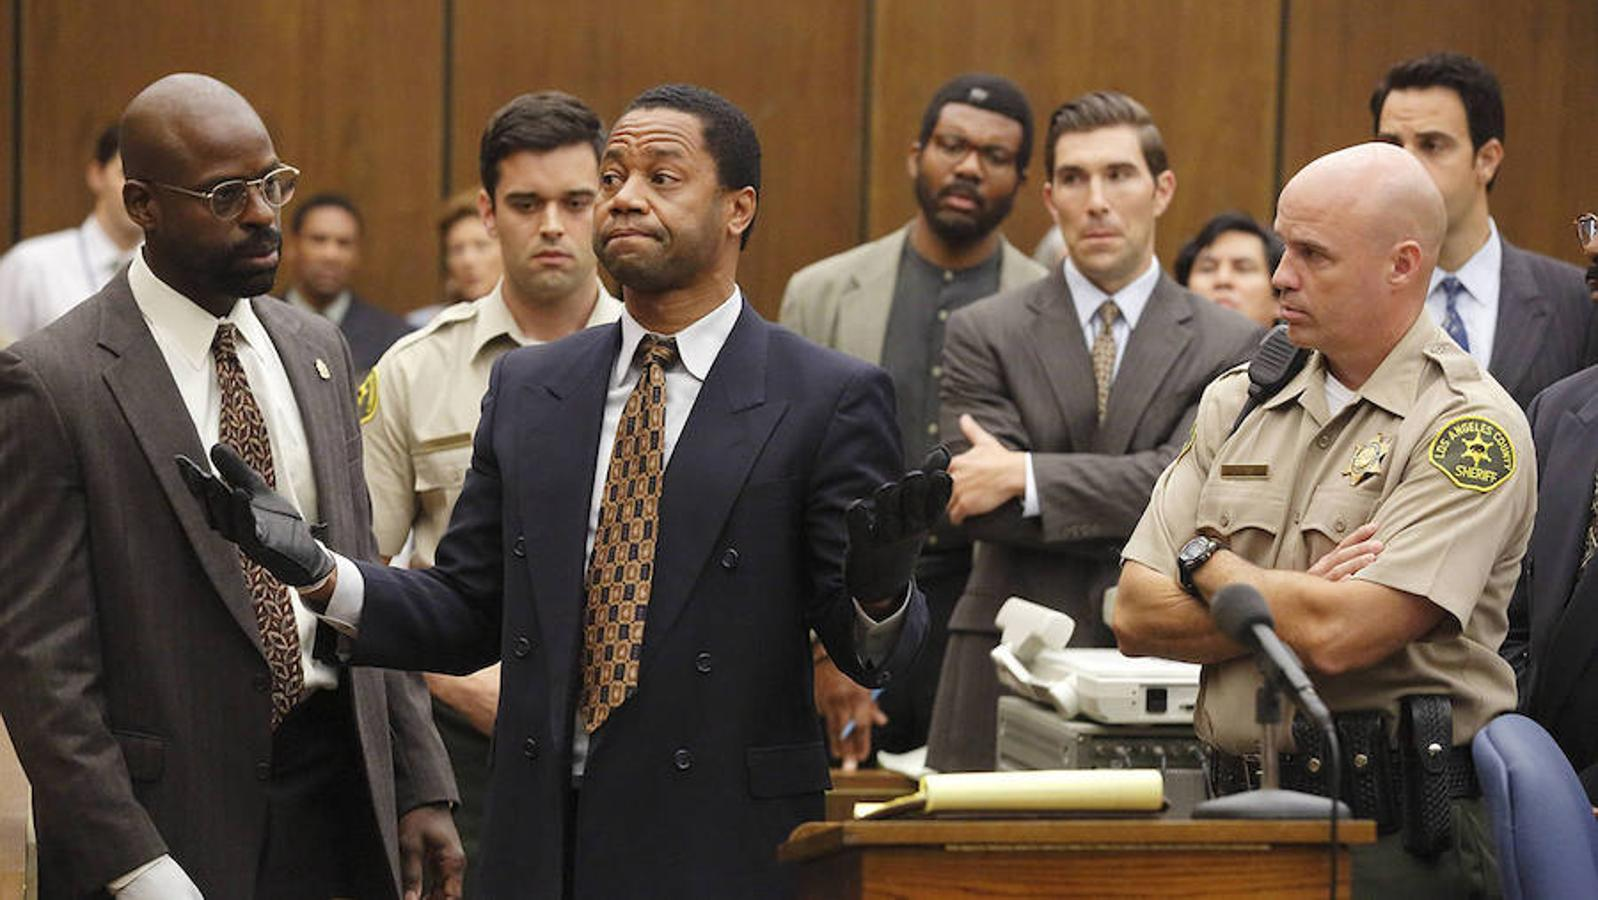 «American Crime Story: The People v. O.J. Simpson»